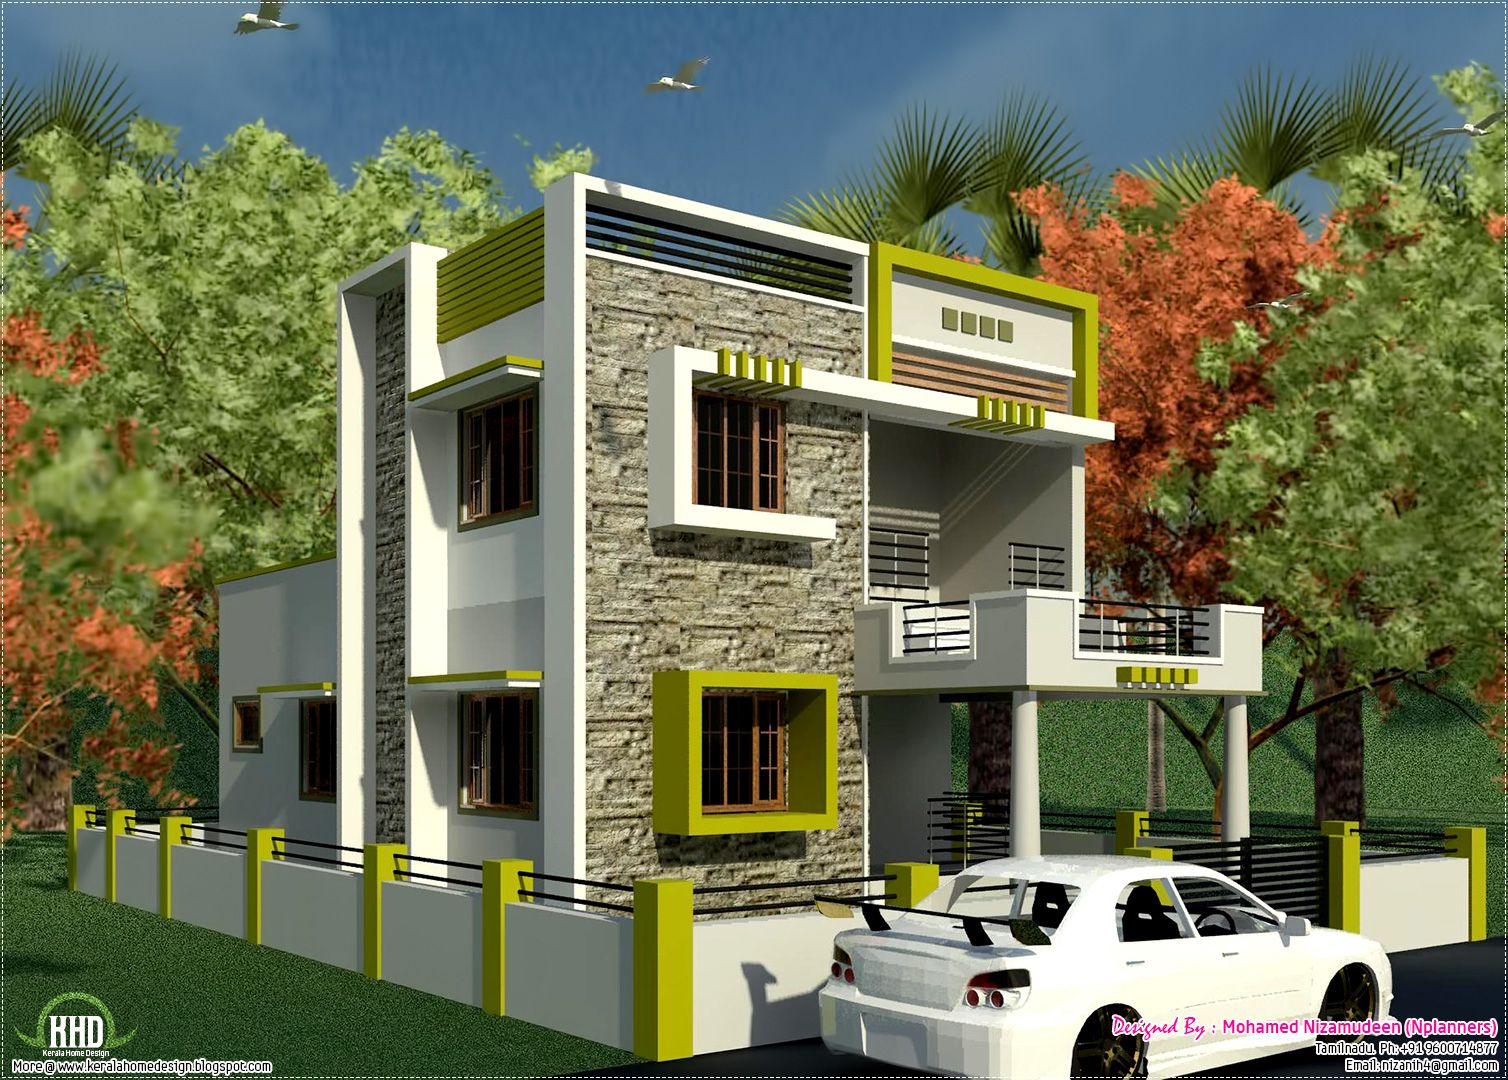 Small house with car park design tobfav com ideas for Building plans indian homes